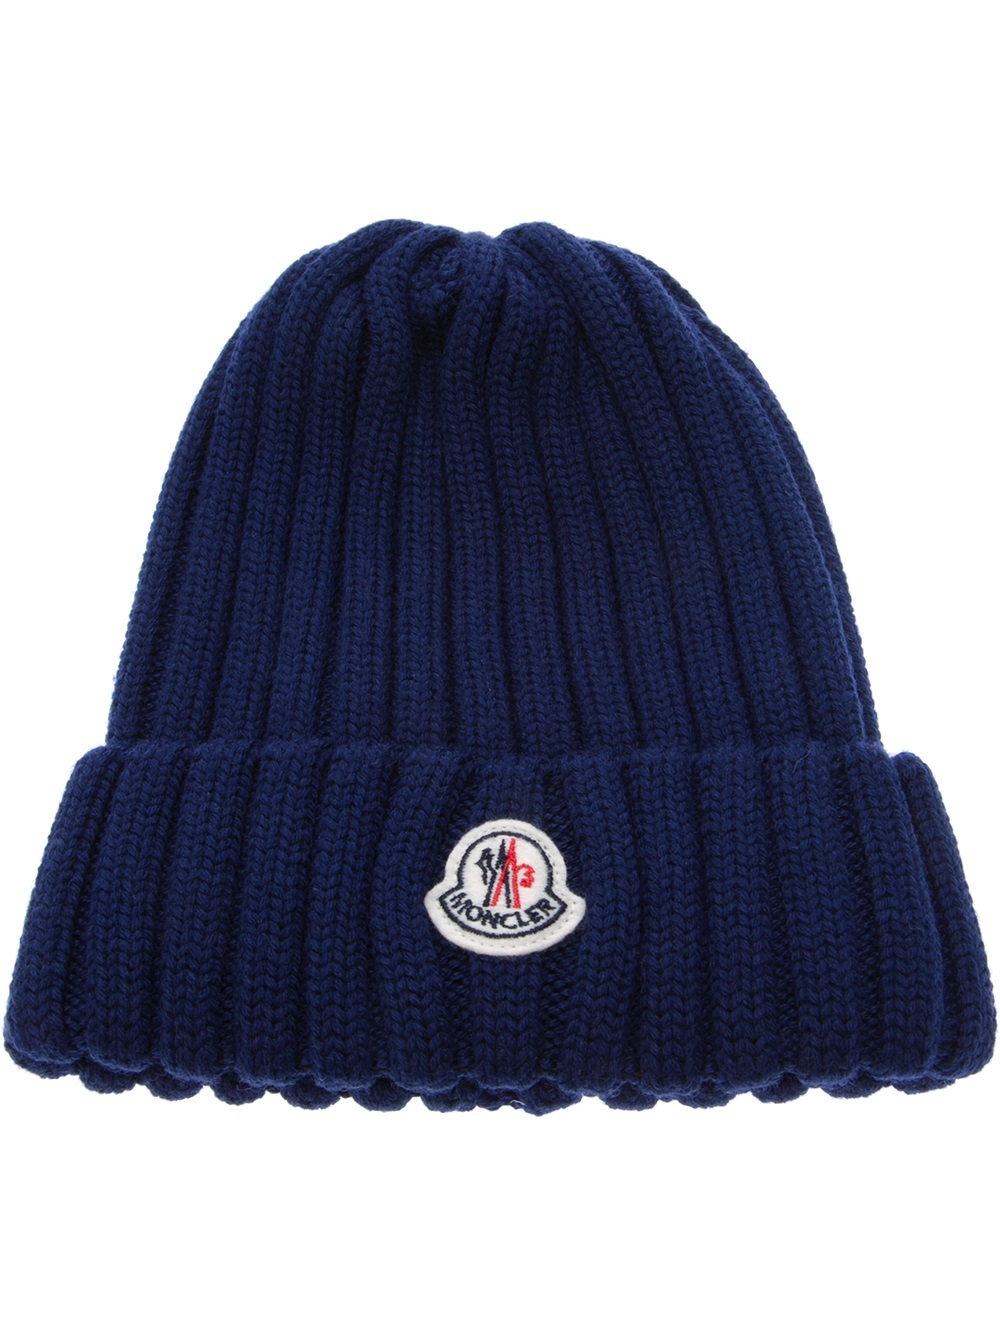 Lyst - Moncler Wool Ribbed Knit Beanie Hat in Blue for Men 3d77ba24f51